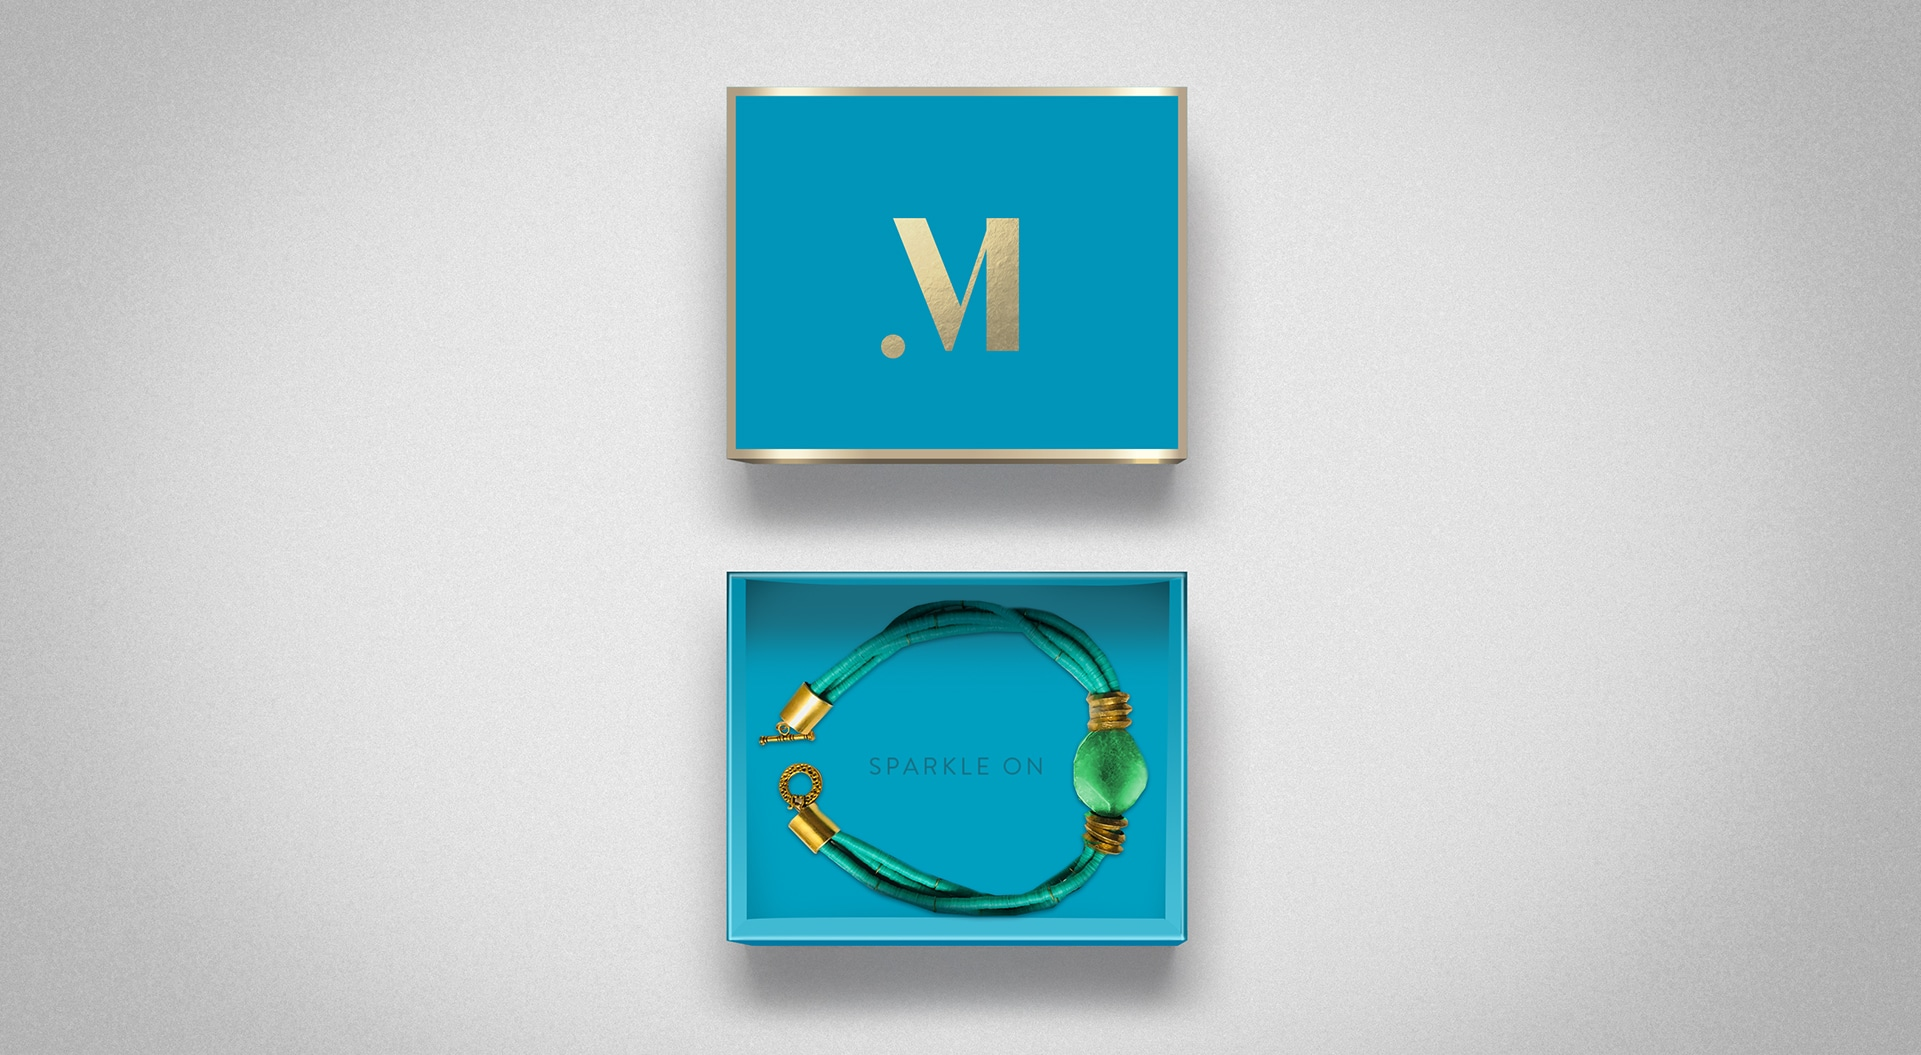 Teal and gold packaging design